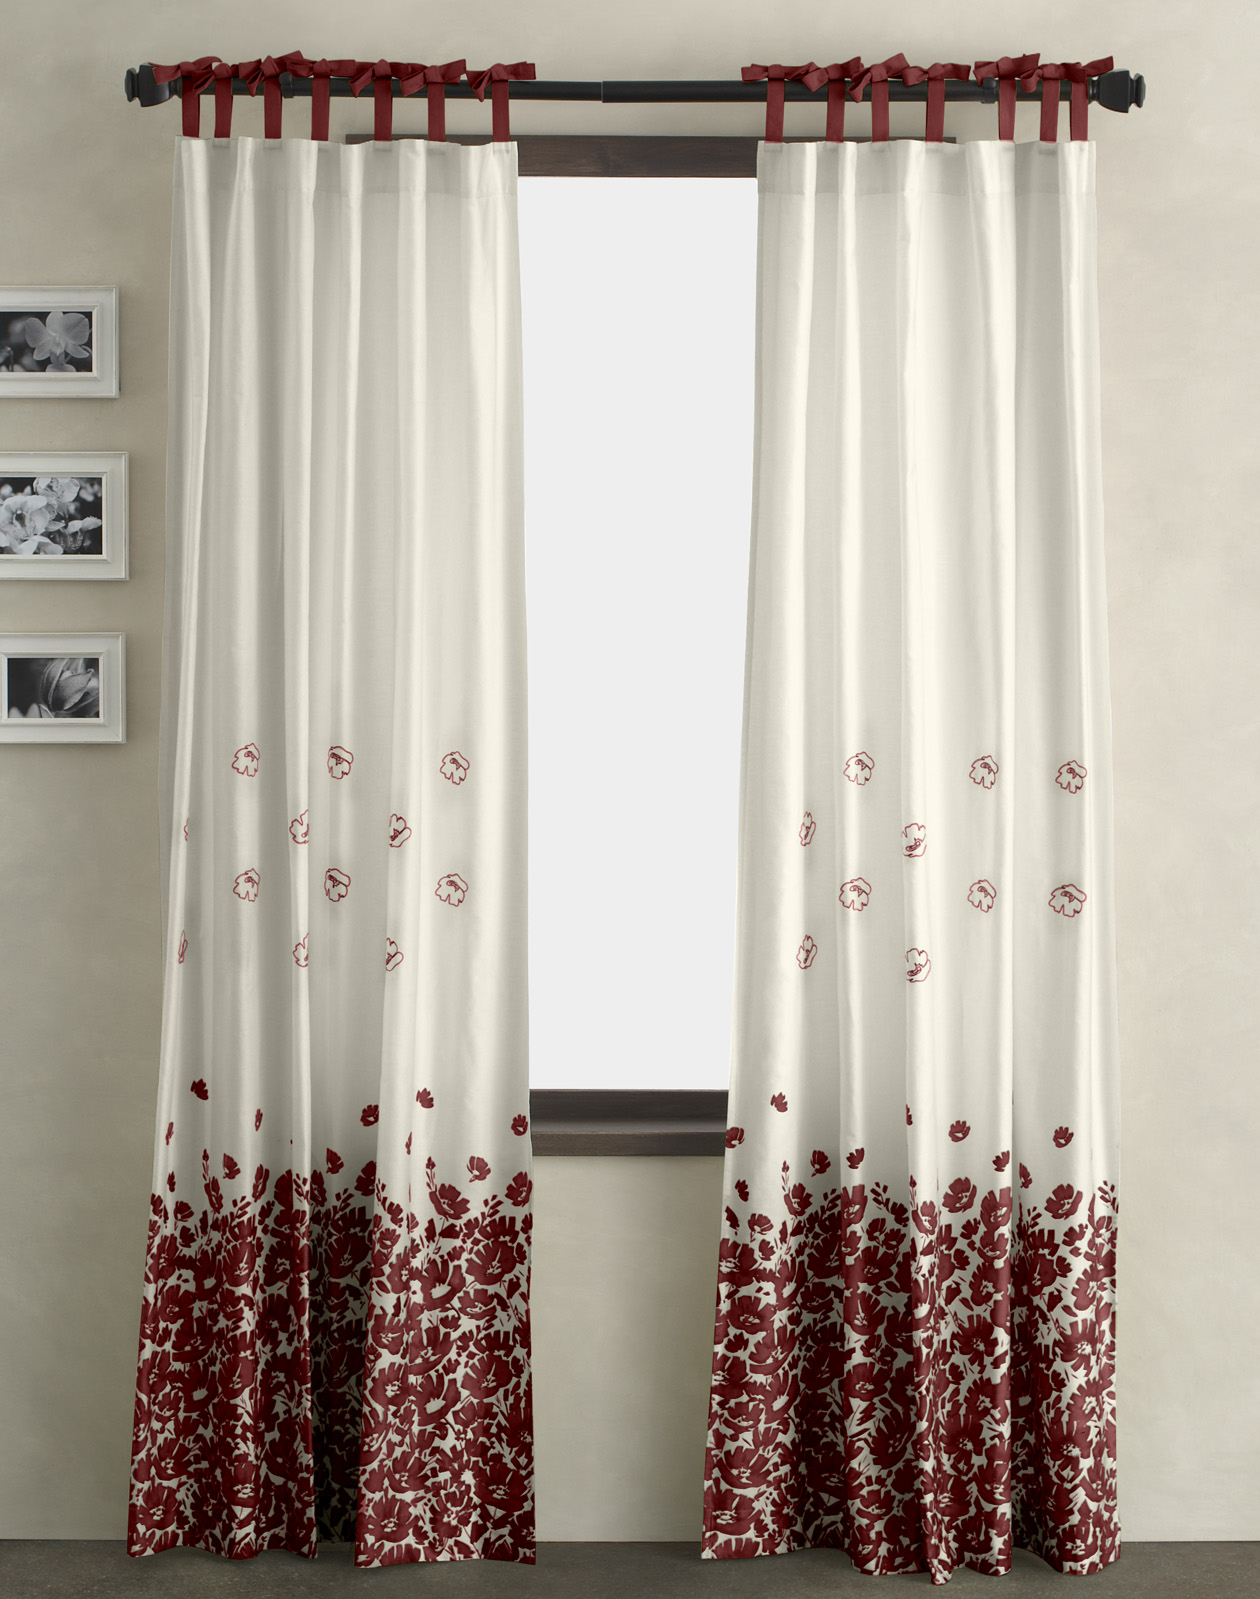 Curtain Designs for Windows White Red Floral Curtain Red Bow Curtain White Wall